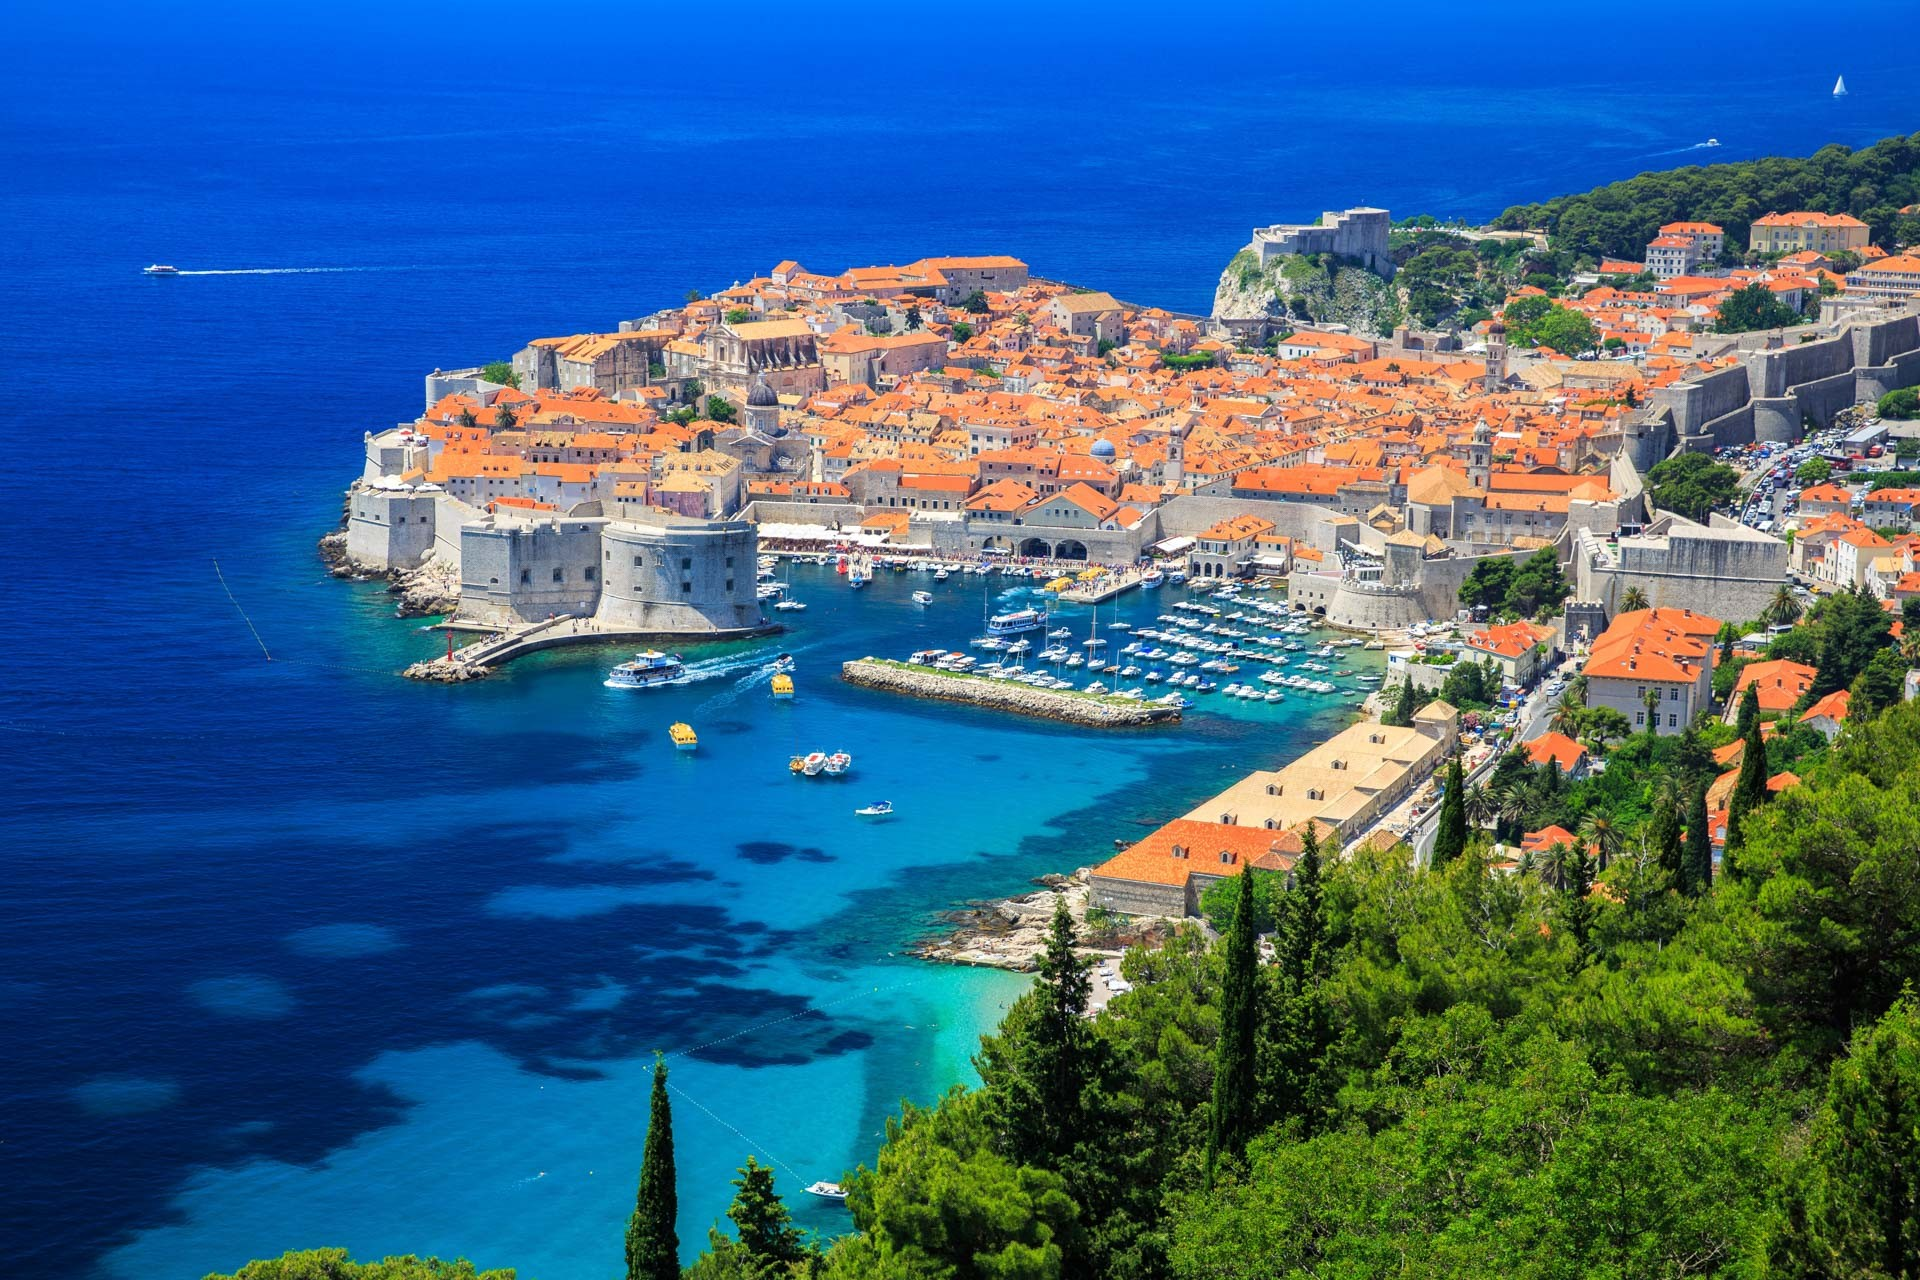 DUBROVNIK-ZAGREB with 4 countries in 8 days